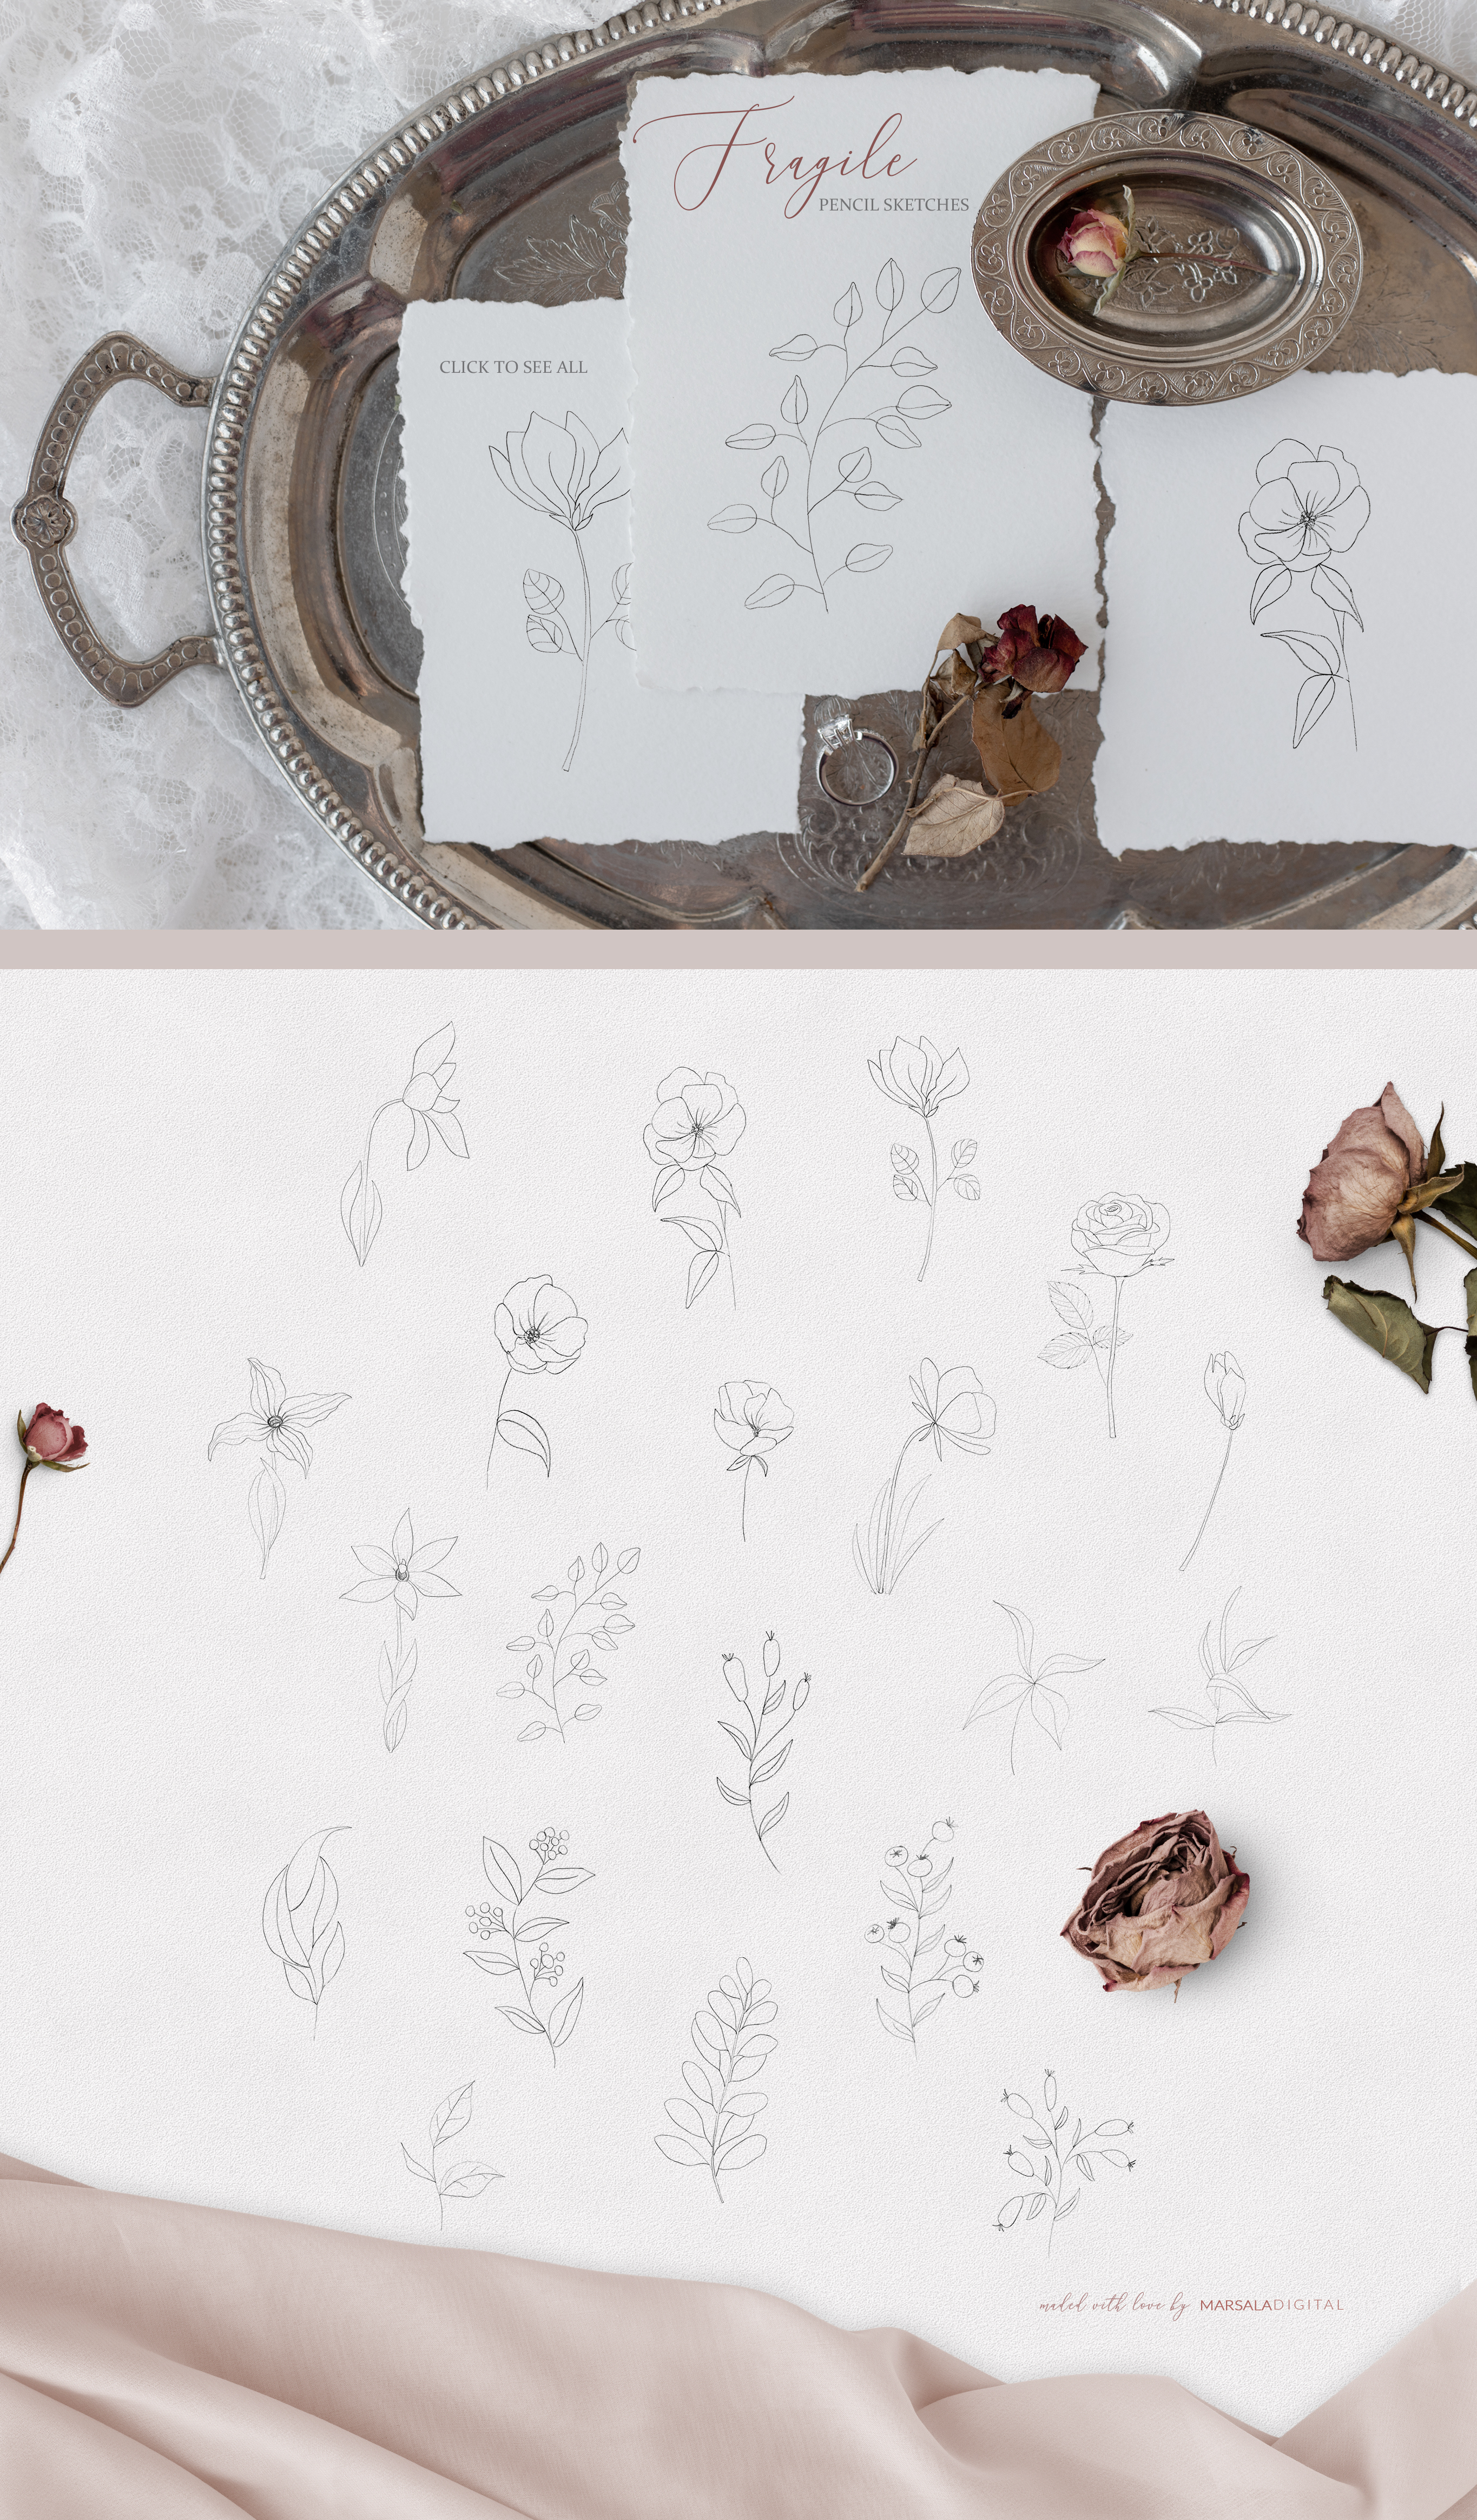 Fine Art Pencil Sketch Florals, Gold Brush Strokes, Textures example image 2